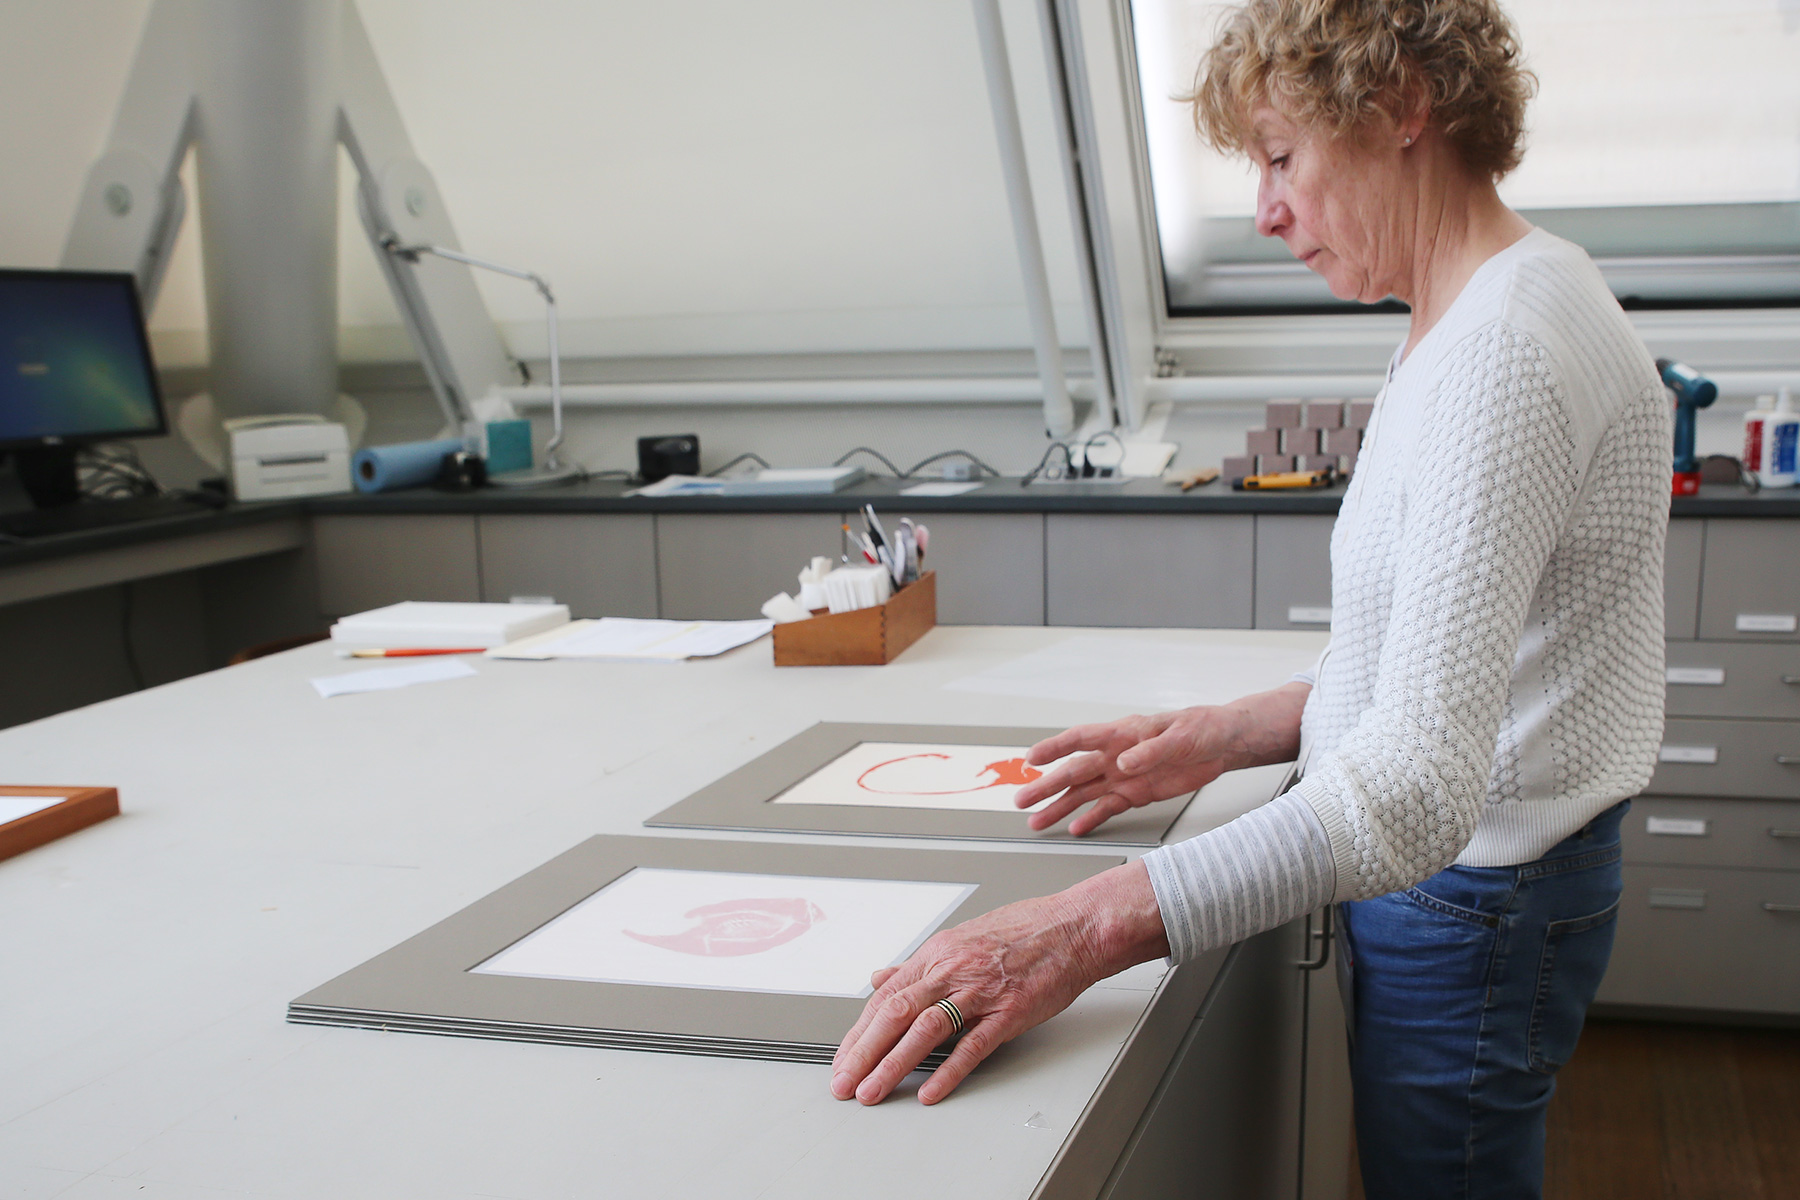 Senior conservation technician Charlotte Karney mats two of Bernard Childs's four B.B. engravings. When new works are added to the Student Print Rental Collection, they are individually matted and framed by conservators in the Straus Center for Conservation and Technical Studies.